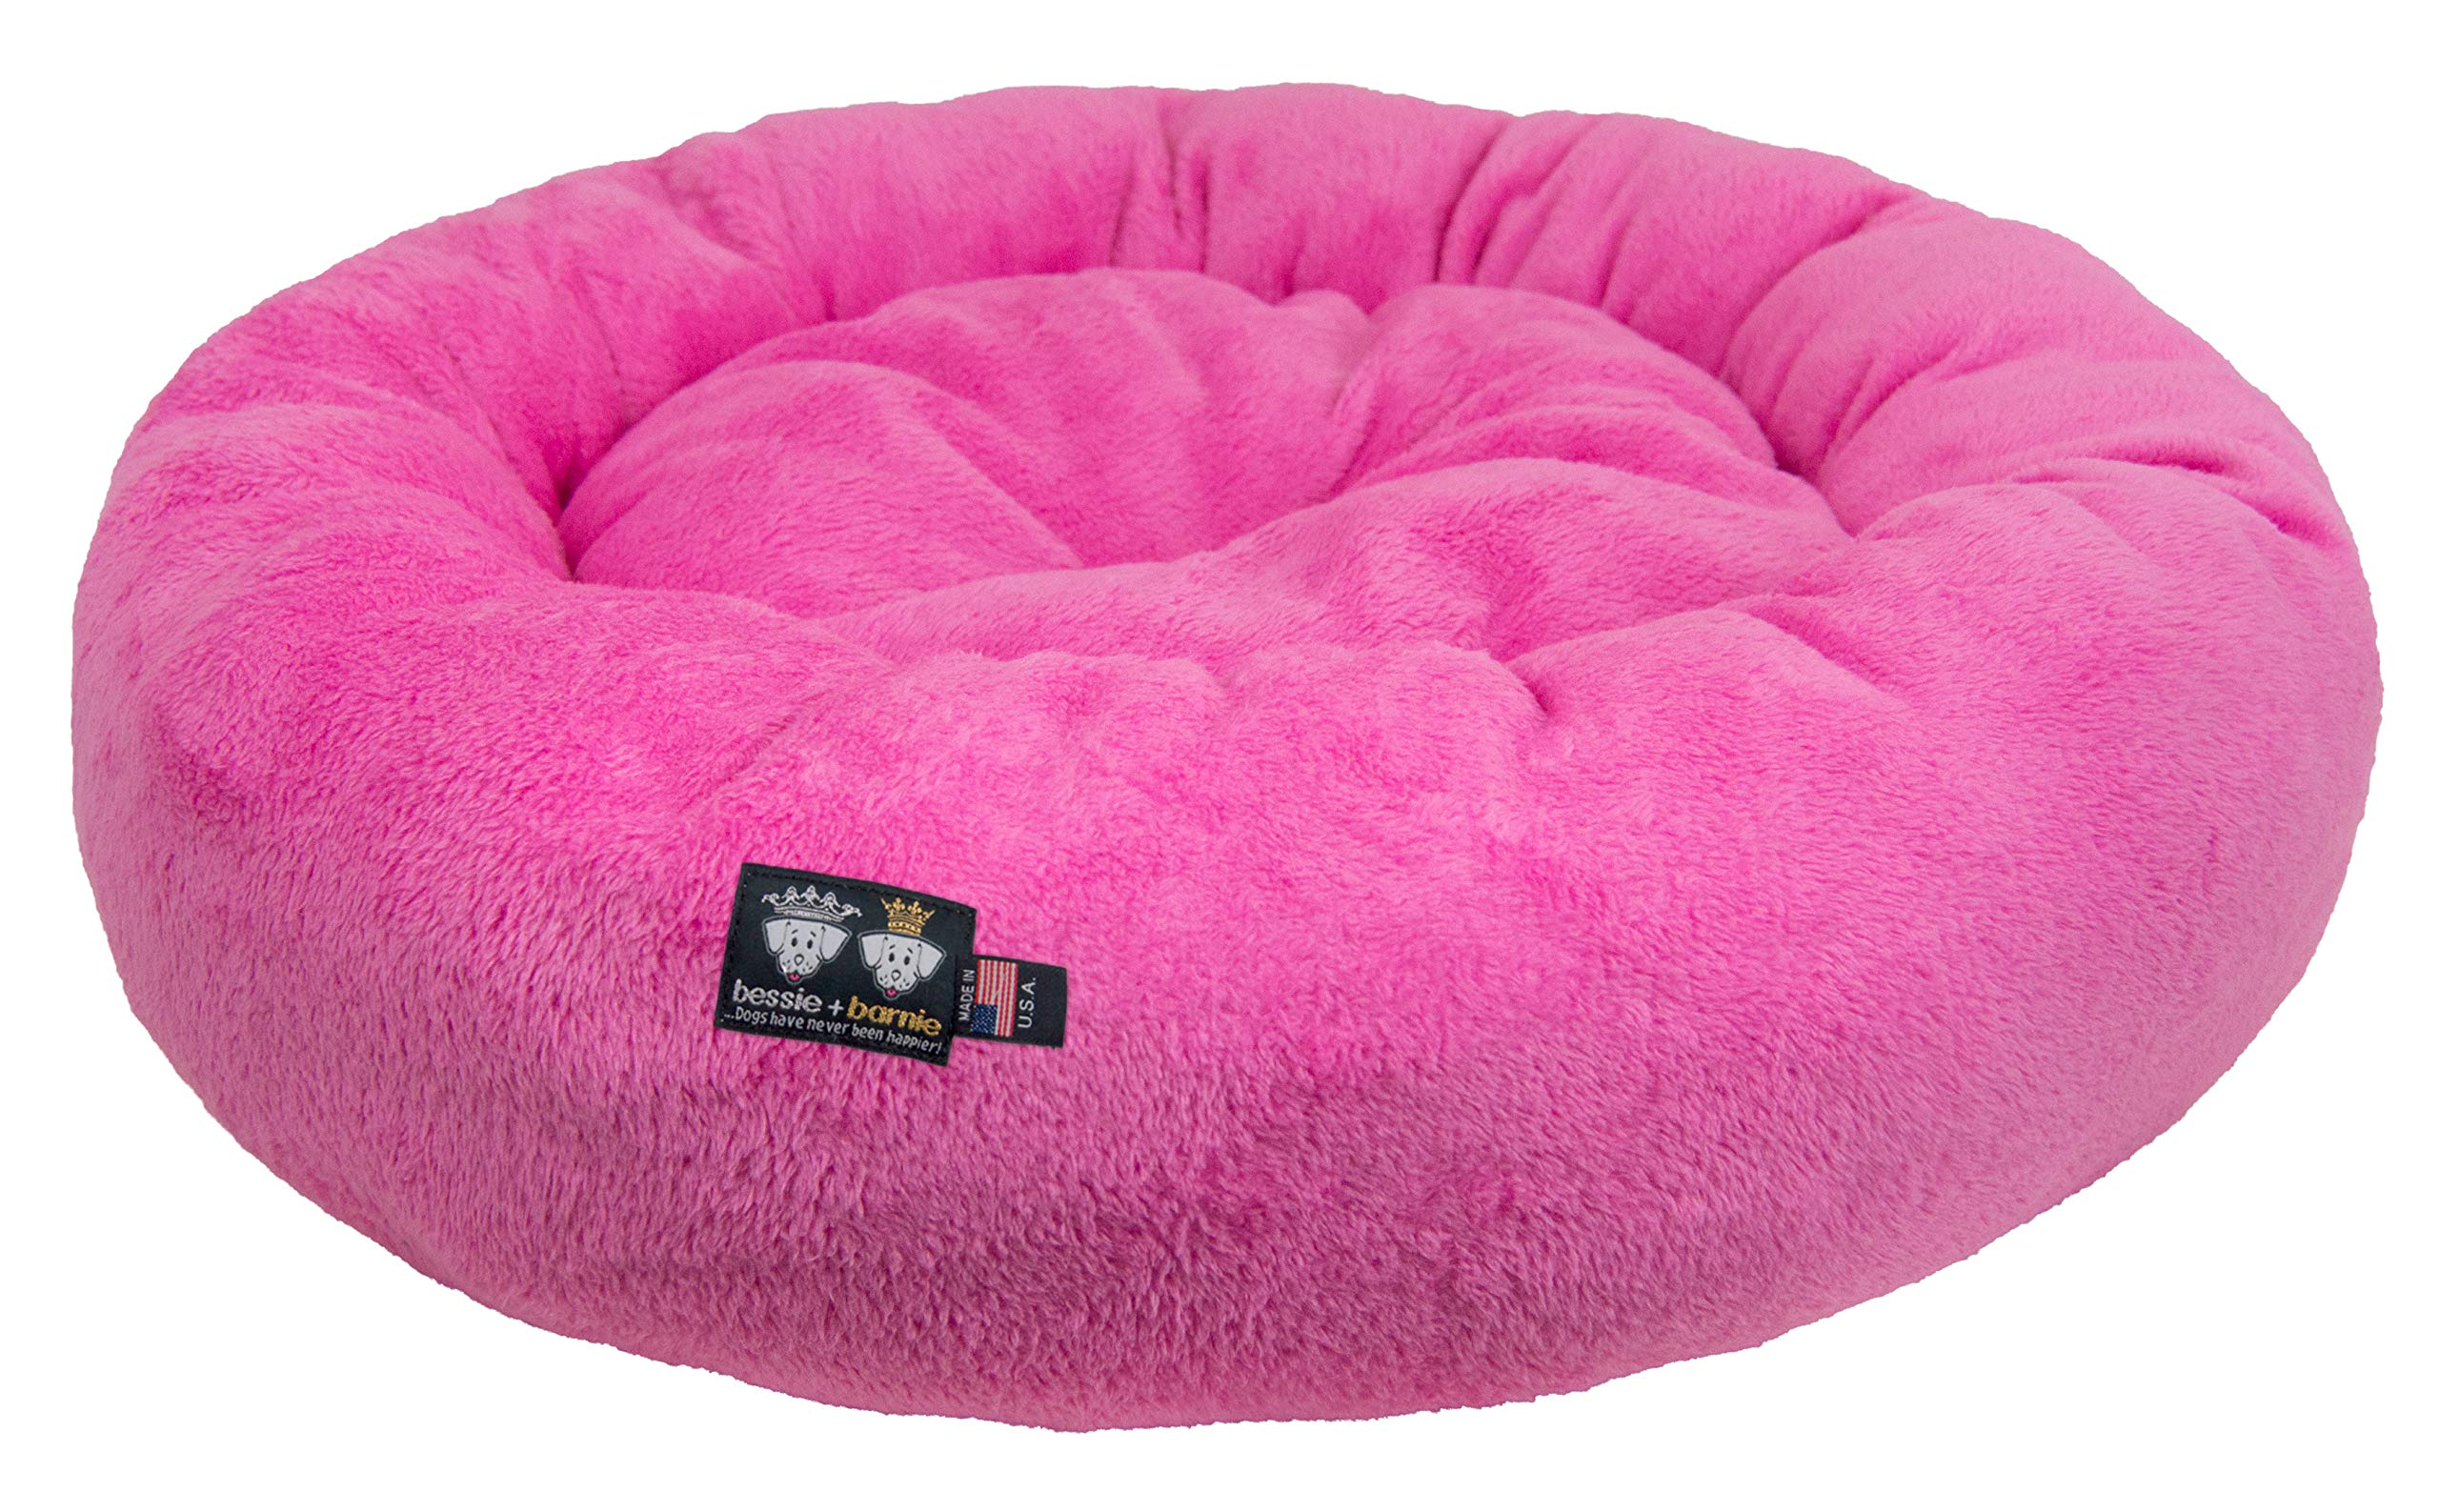 BESSIE AND BARNIE Ultra Plush Deluxe Comfort Pet Dog & Cat Pink Snuggle Bed (Multiple Sizes) - Machine Washable, Made in The USA, Reversible, Durable Soft Fabrics by BESSIE AND BARNIE